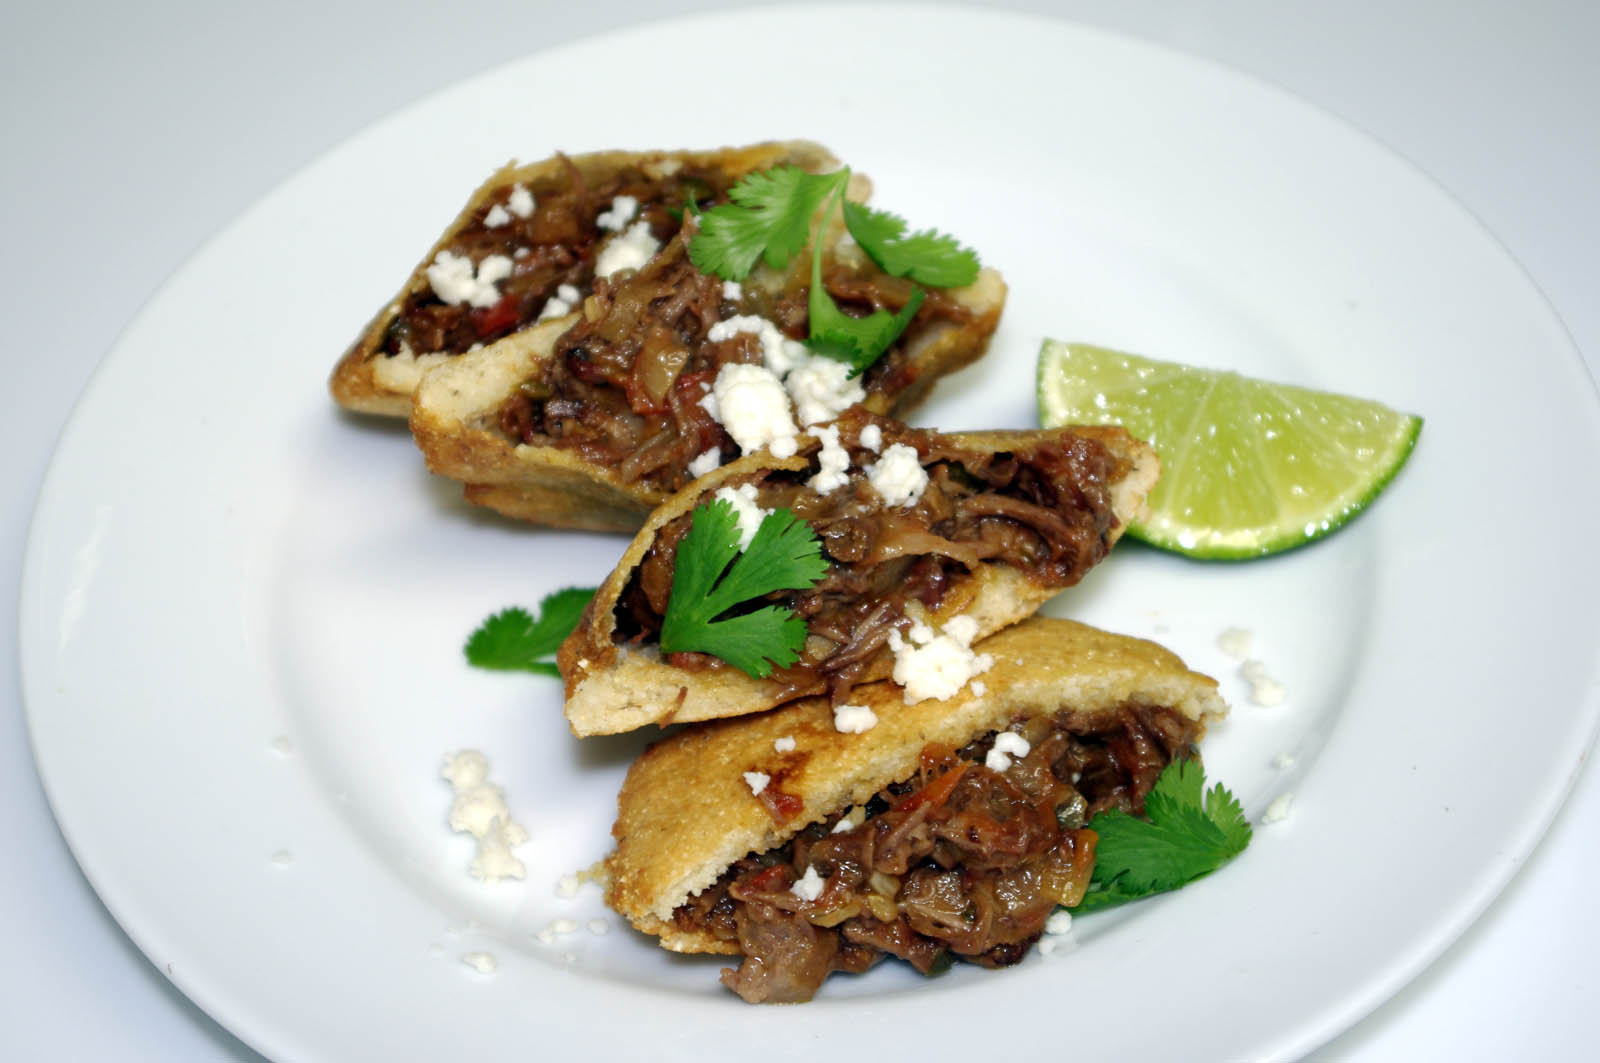 Beer Braised Short Rib Gorditas w/Smokey Refried Black Beans